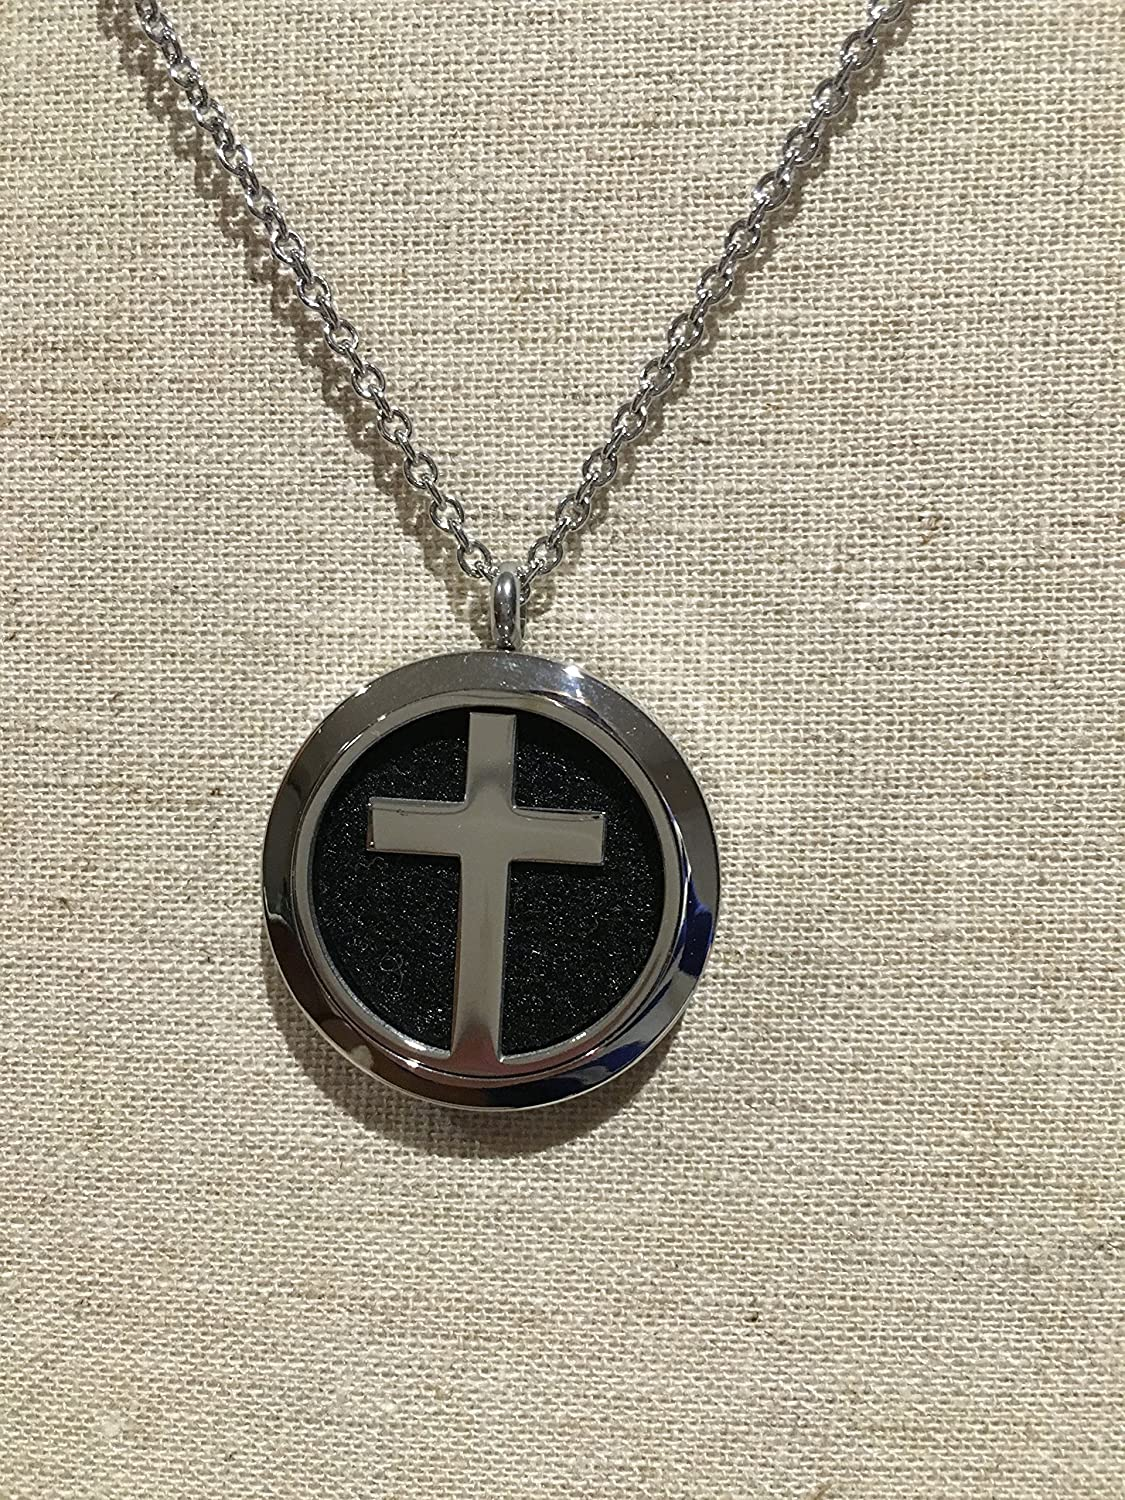 Essential Oils Diffuser Stainless Steel Necklace Cross Religious pendant  with 19